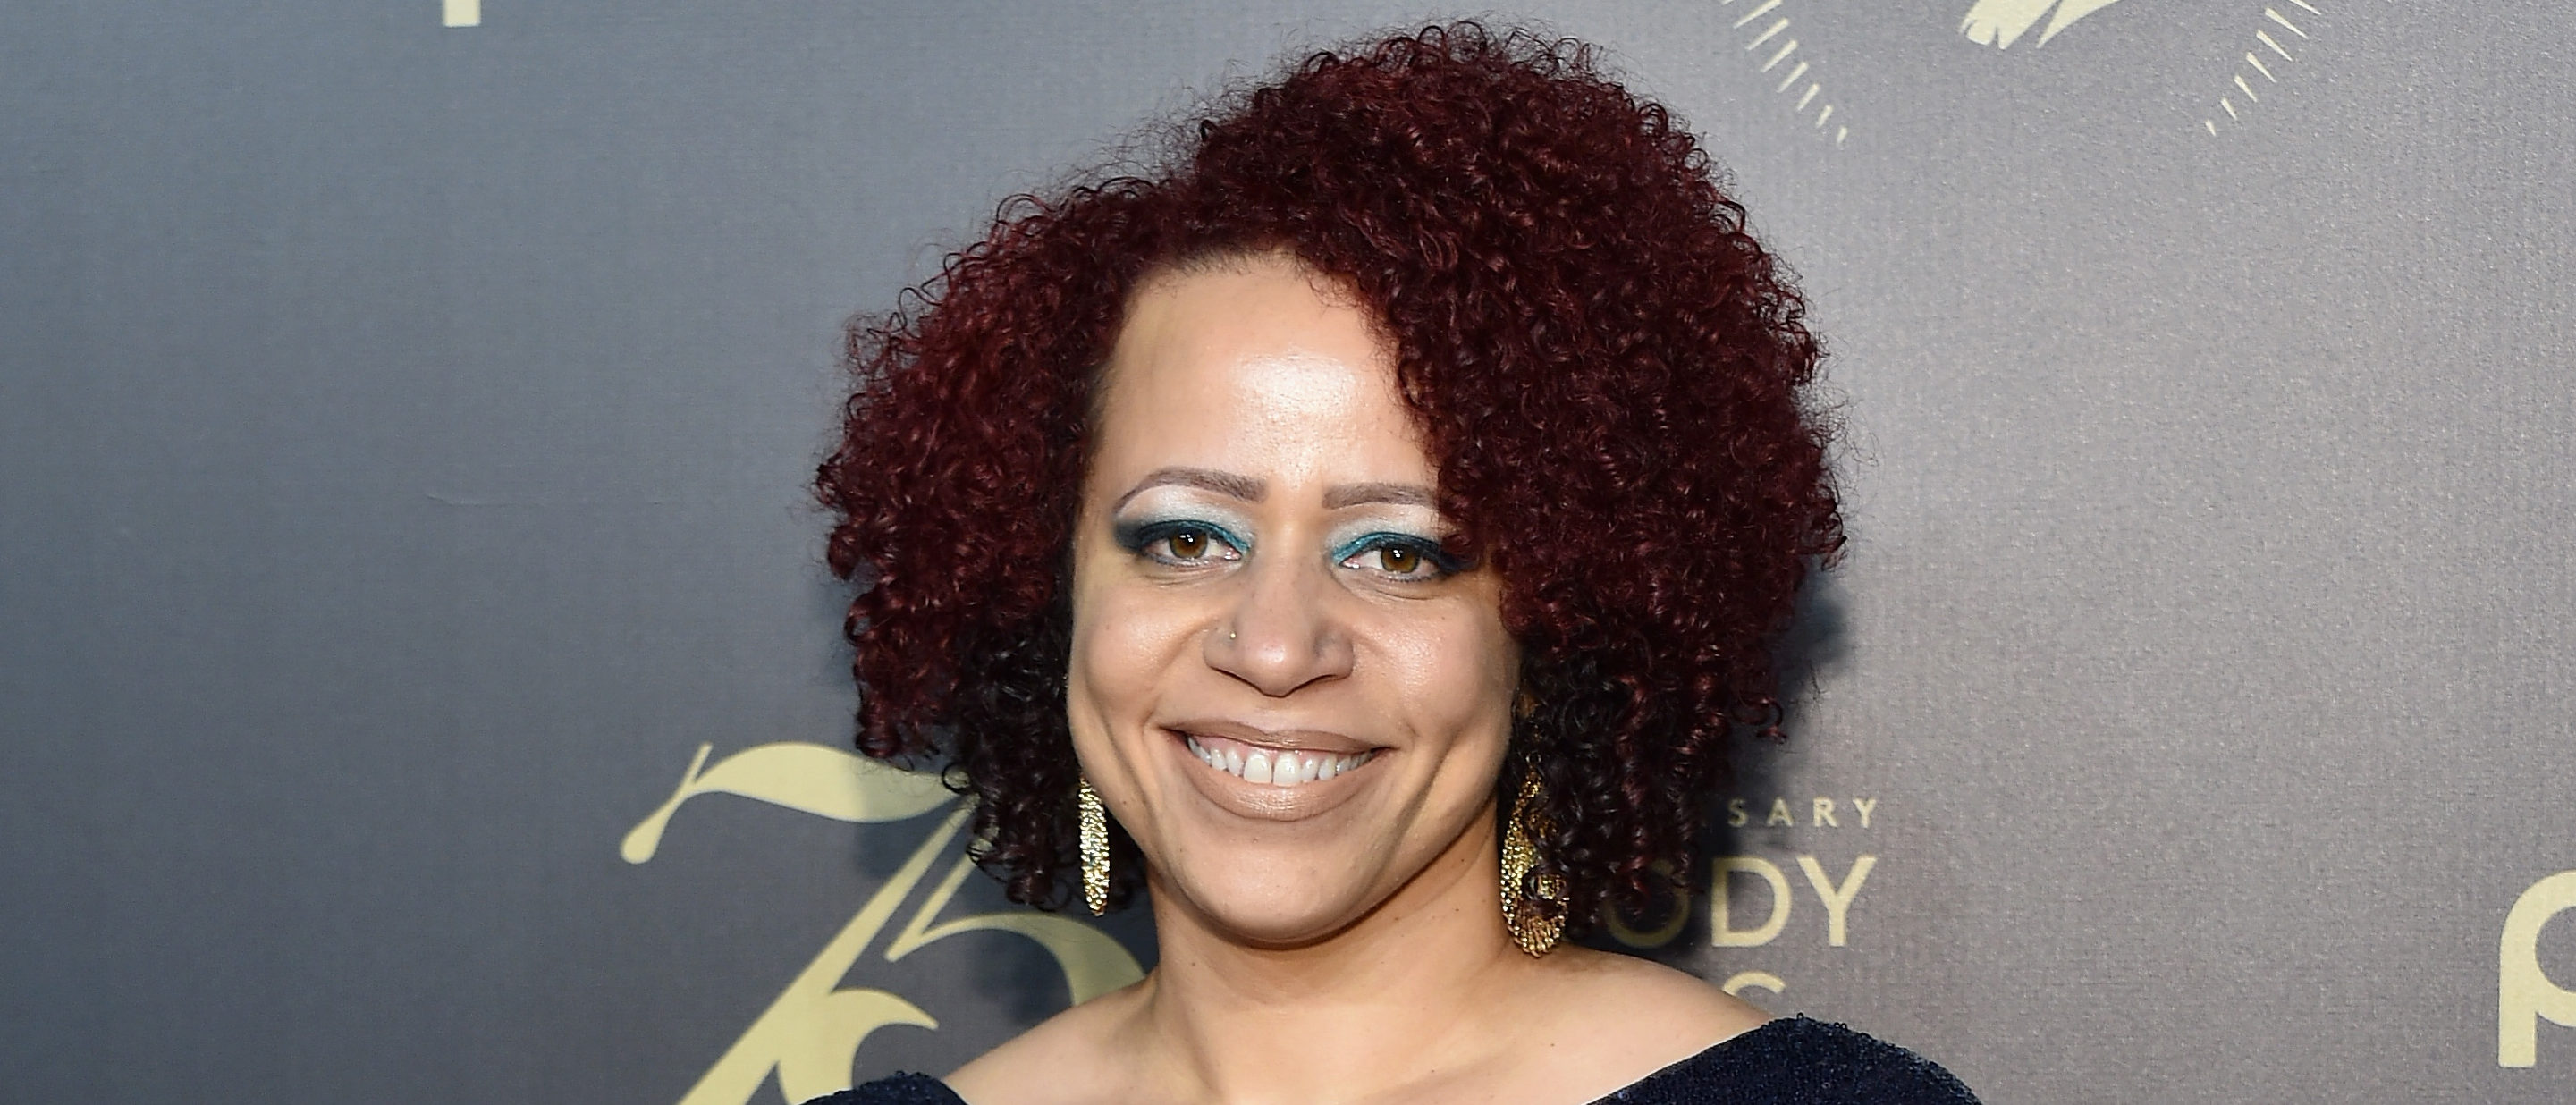 Reporter Nikole Hannah-Jones attends The 75th Annual Peabody Awards Ceremony at Cipriani Wall Street on May 20, 2016 in New York City. (Mike Coppola/Getty Images for Peabody Awards )